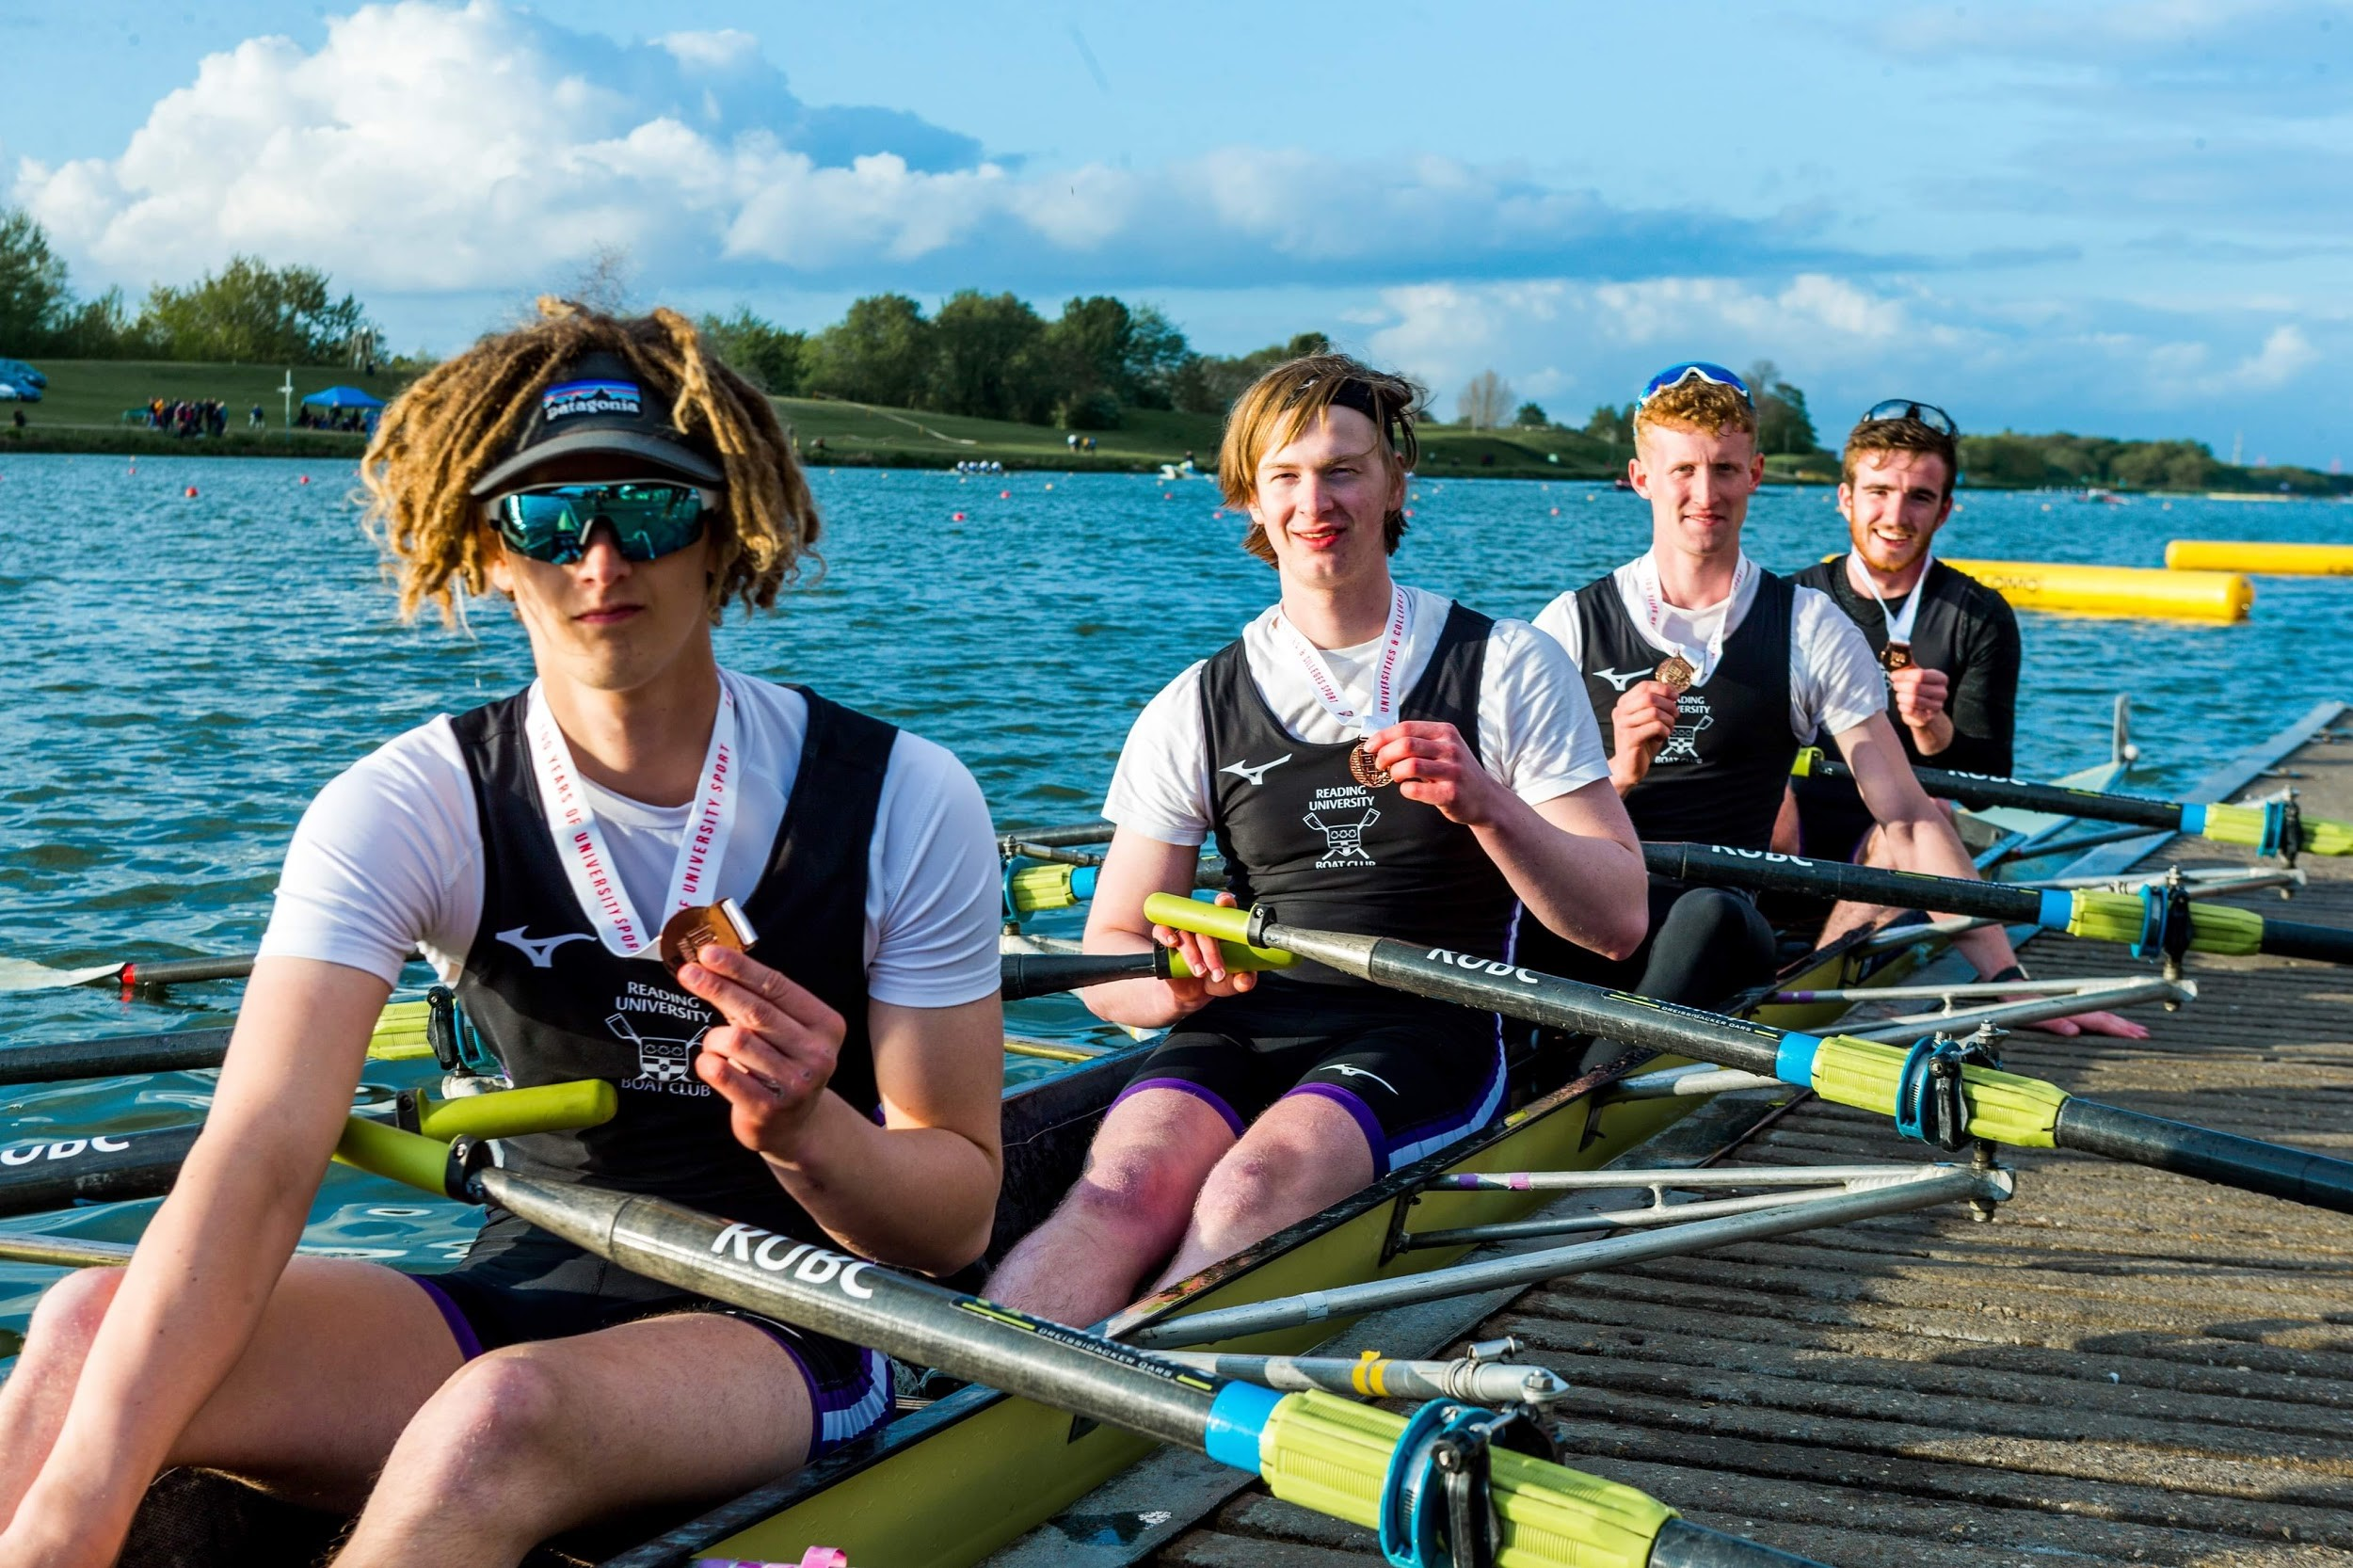 Above: Angus Hinton (Author) at bow in the medal winning BUCS beginners quad at the 2019 regatta.